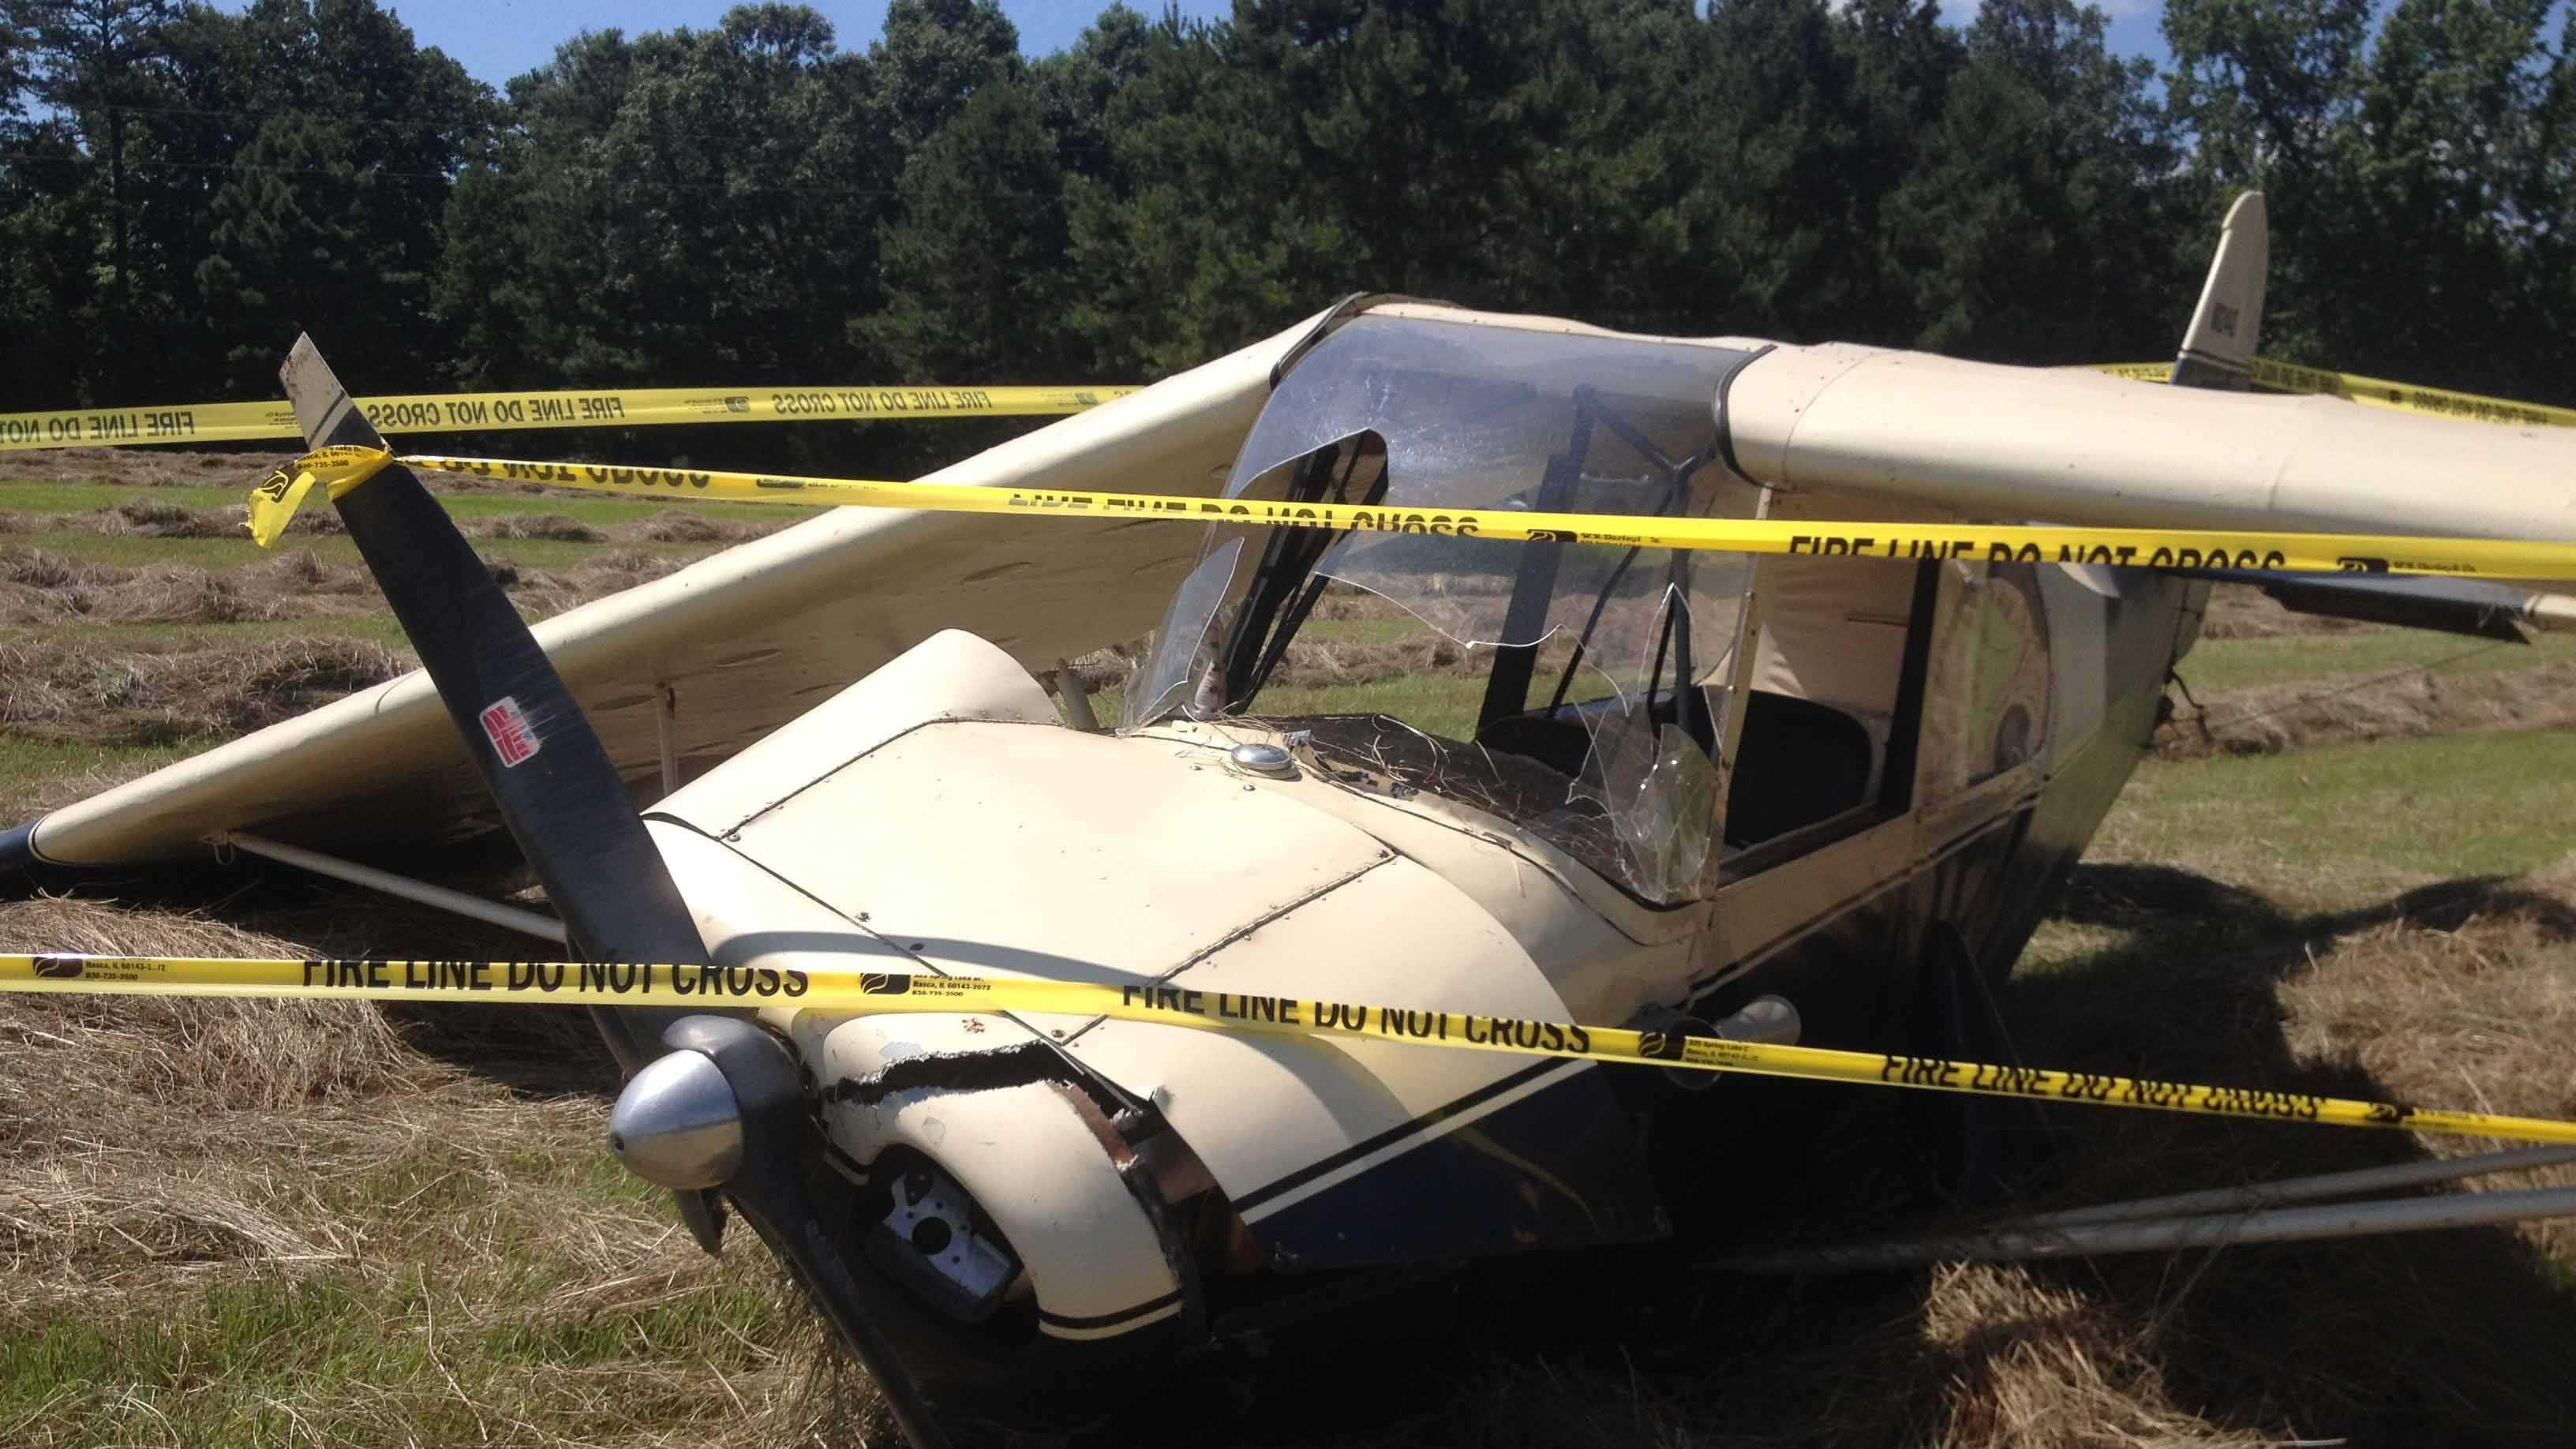 Three people survived a plane crash following an emergency landing in a Prentiss hay field.